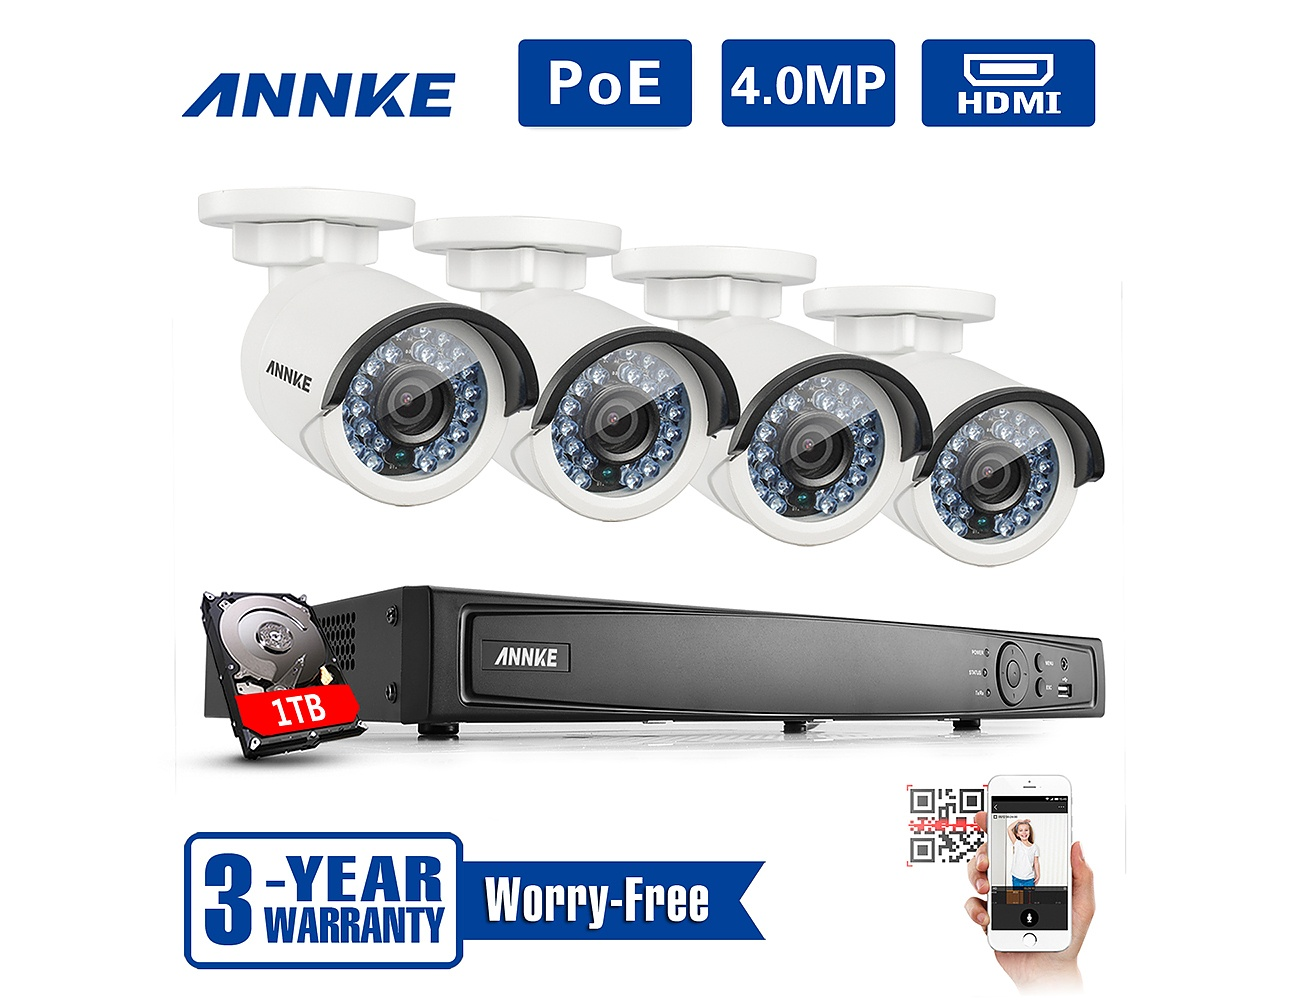 Annke 4MP Security Cameras-A Sense of Security Anytime Anywhere